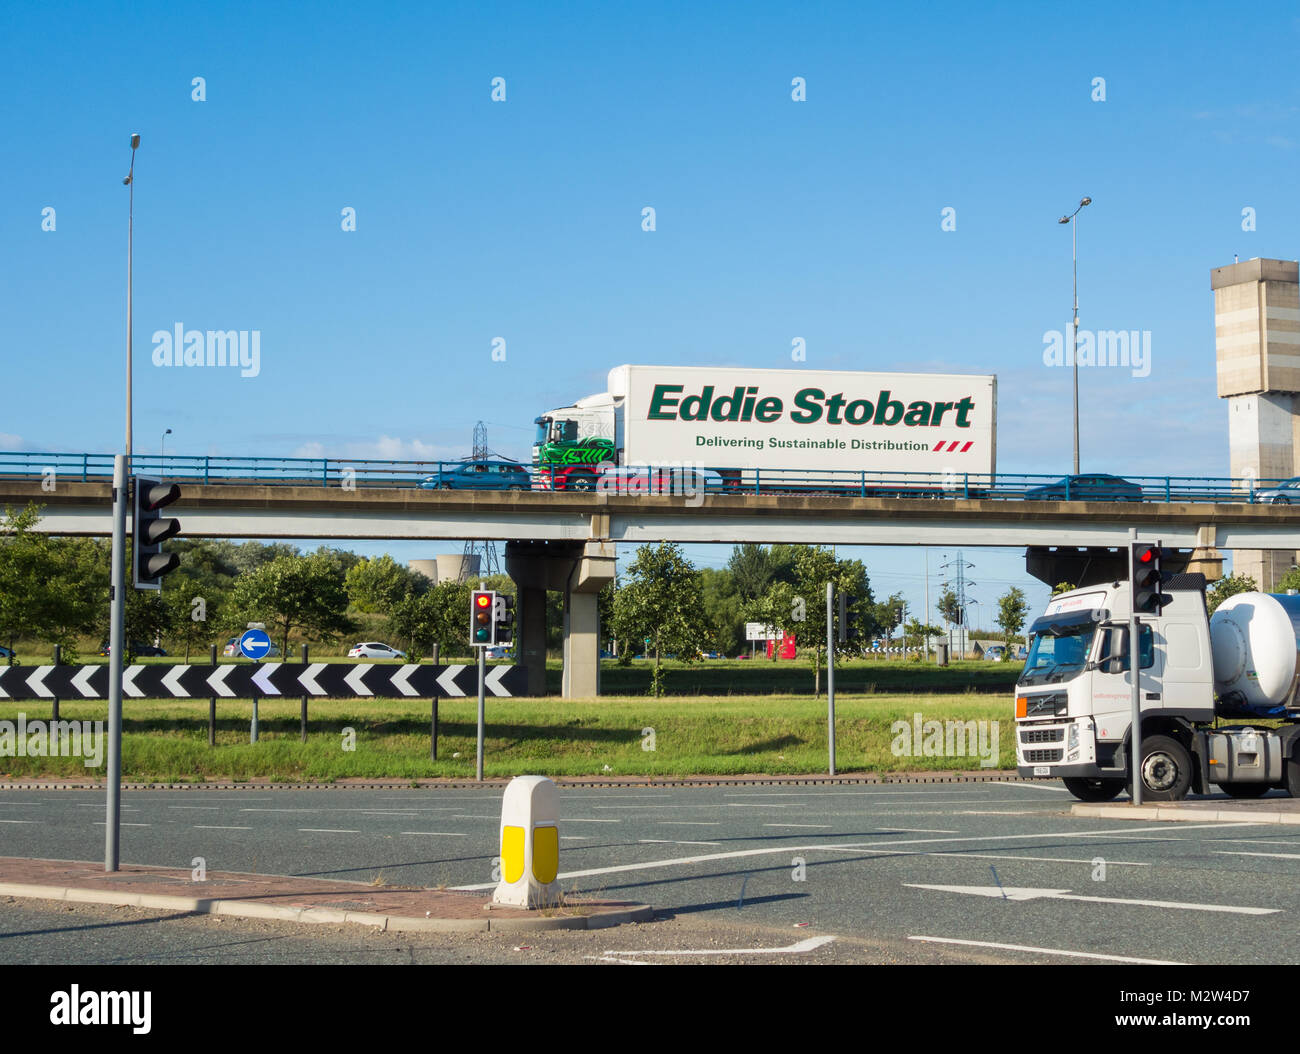 Eddie Stobart lorry on Tees flyover between Stockton and Middlesbrough. UK - Stock Image